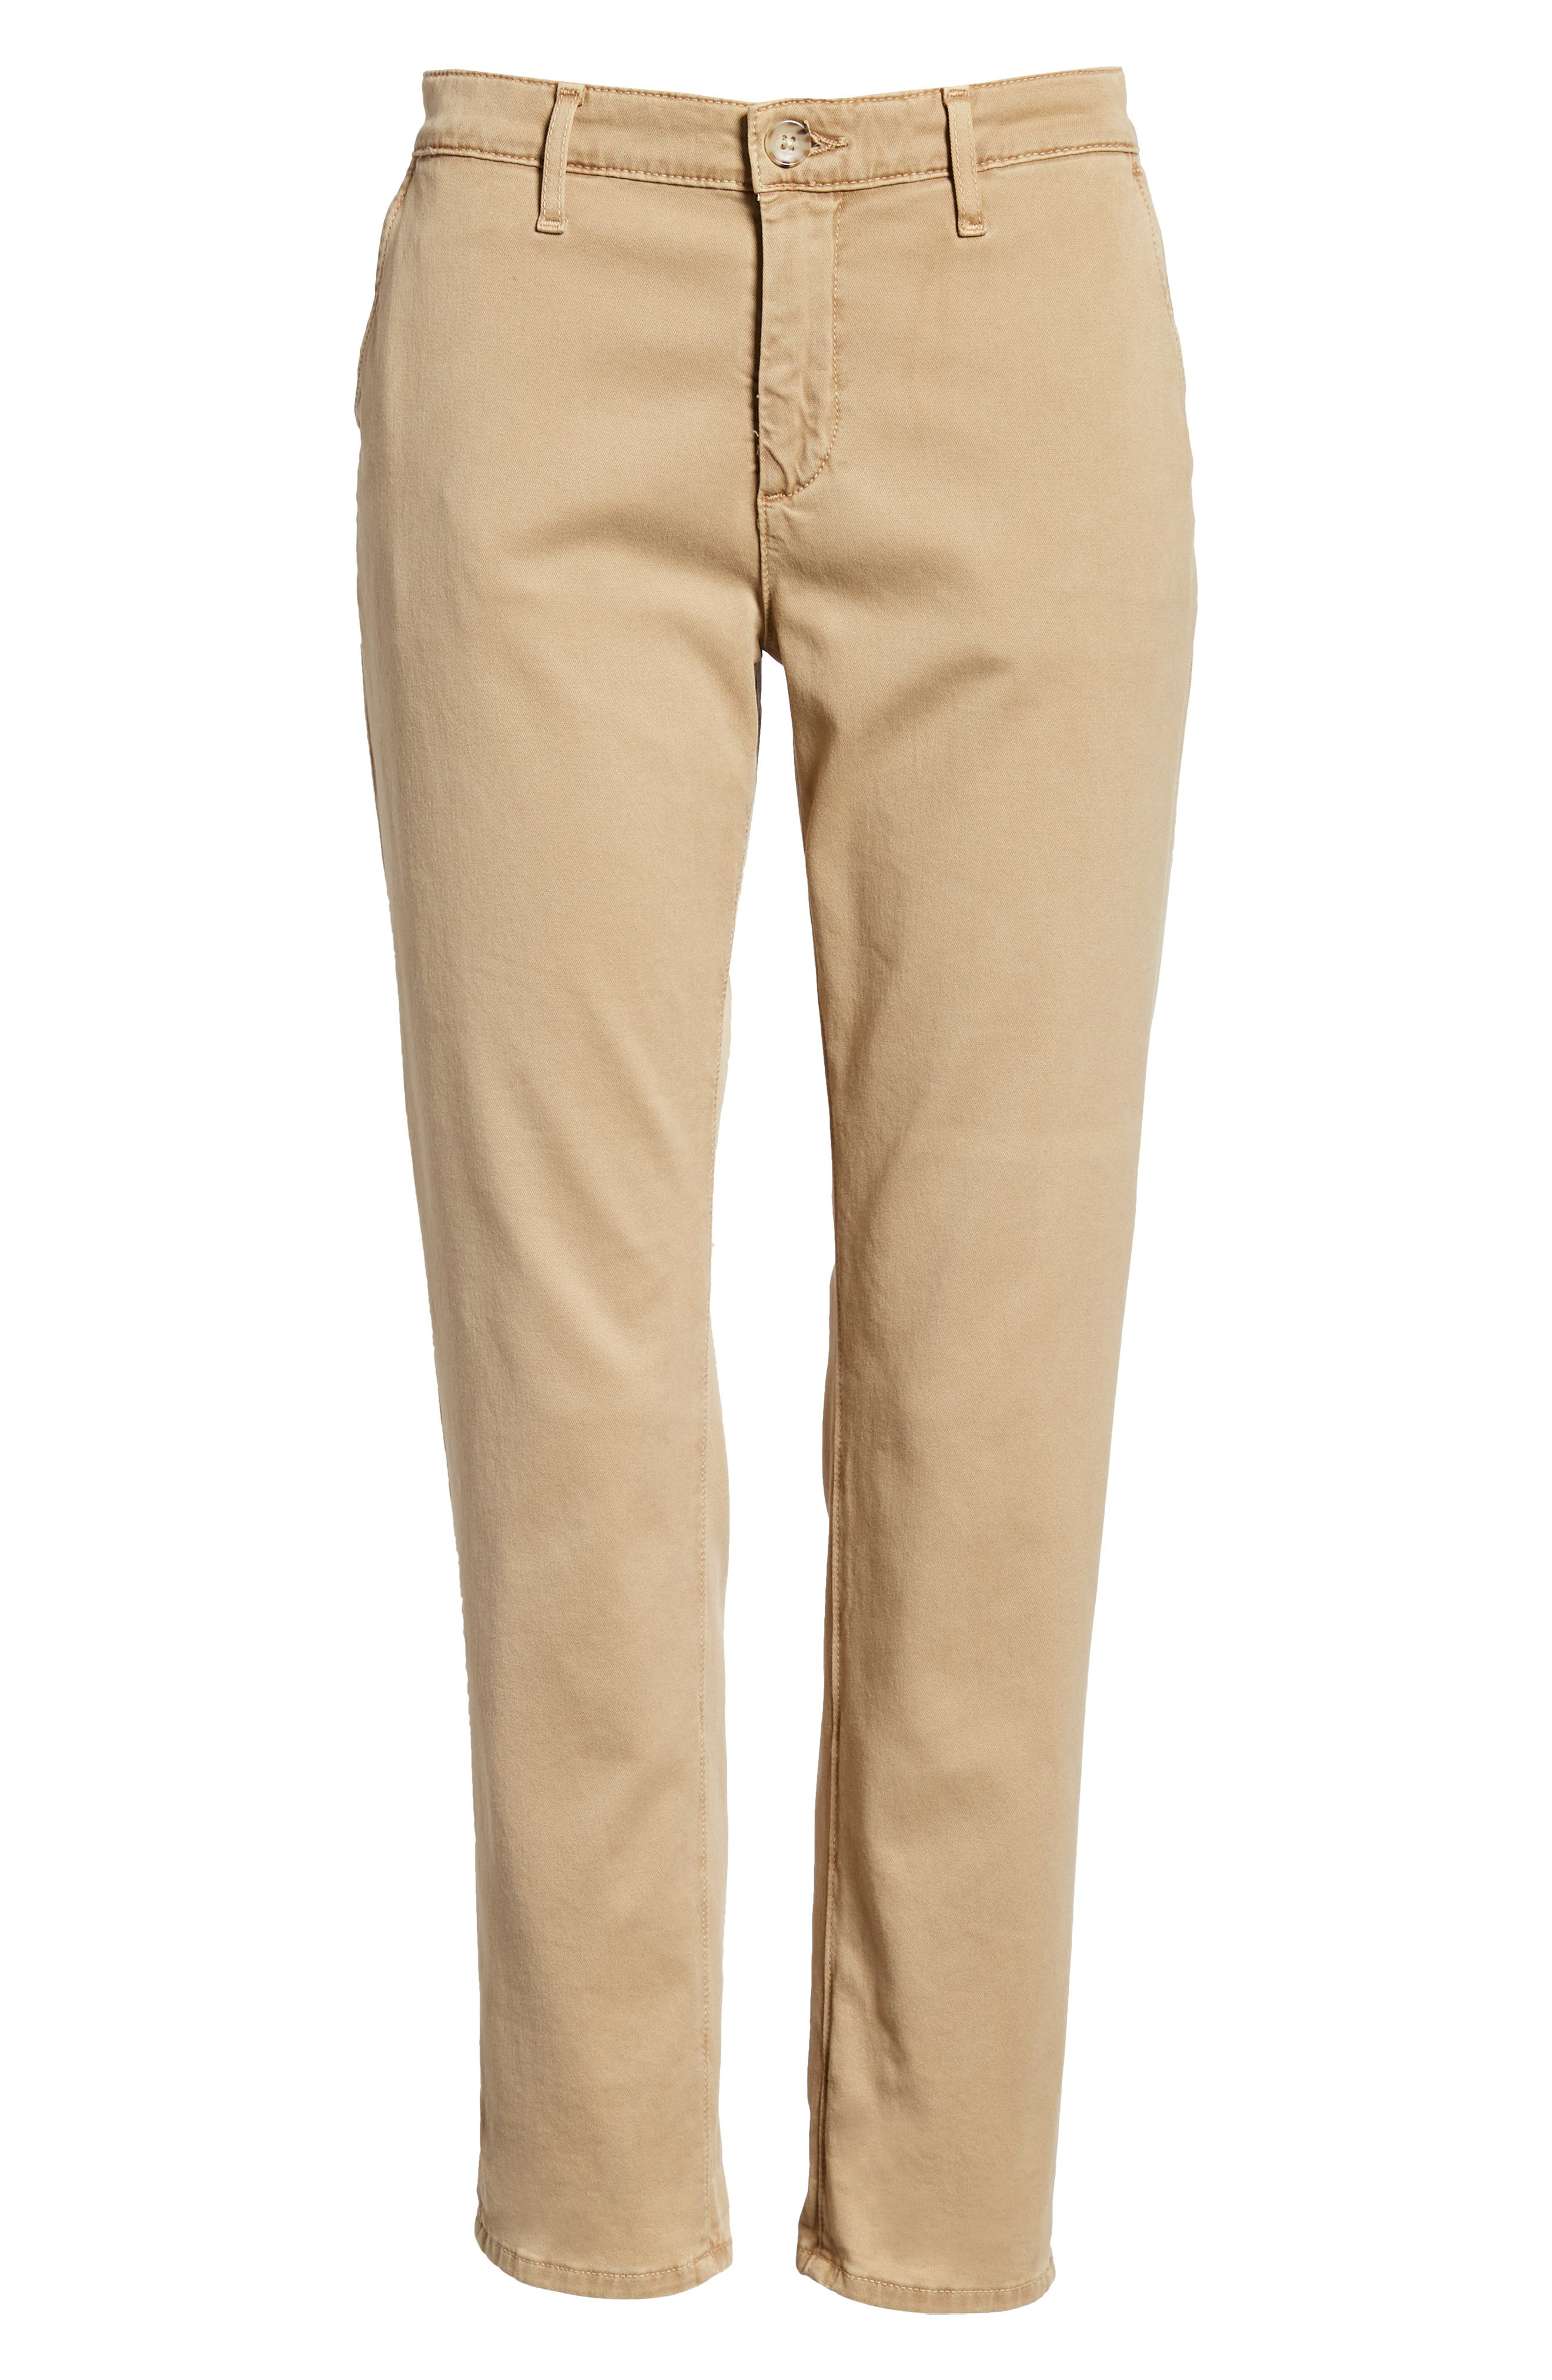 Caden Crop Twill Trousers,                             Alternate thumbnail 7, color,                             SULFUR TOASTED